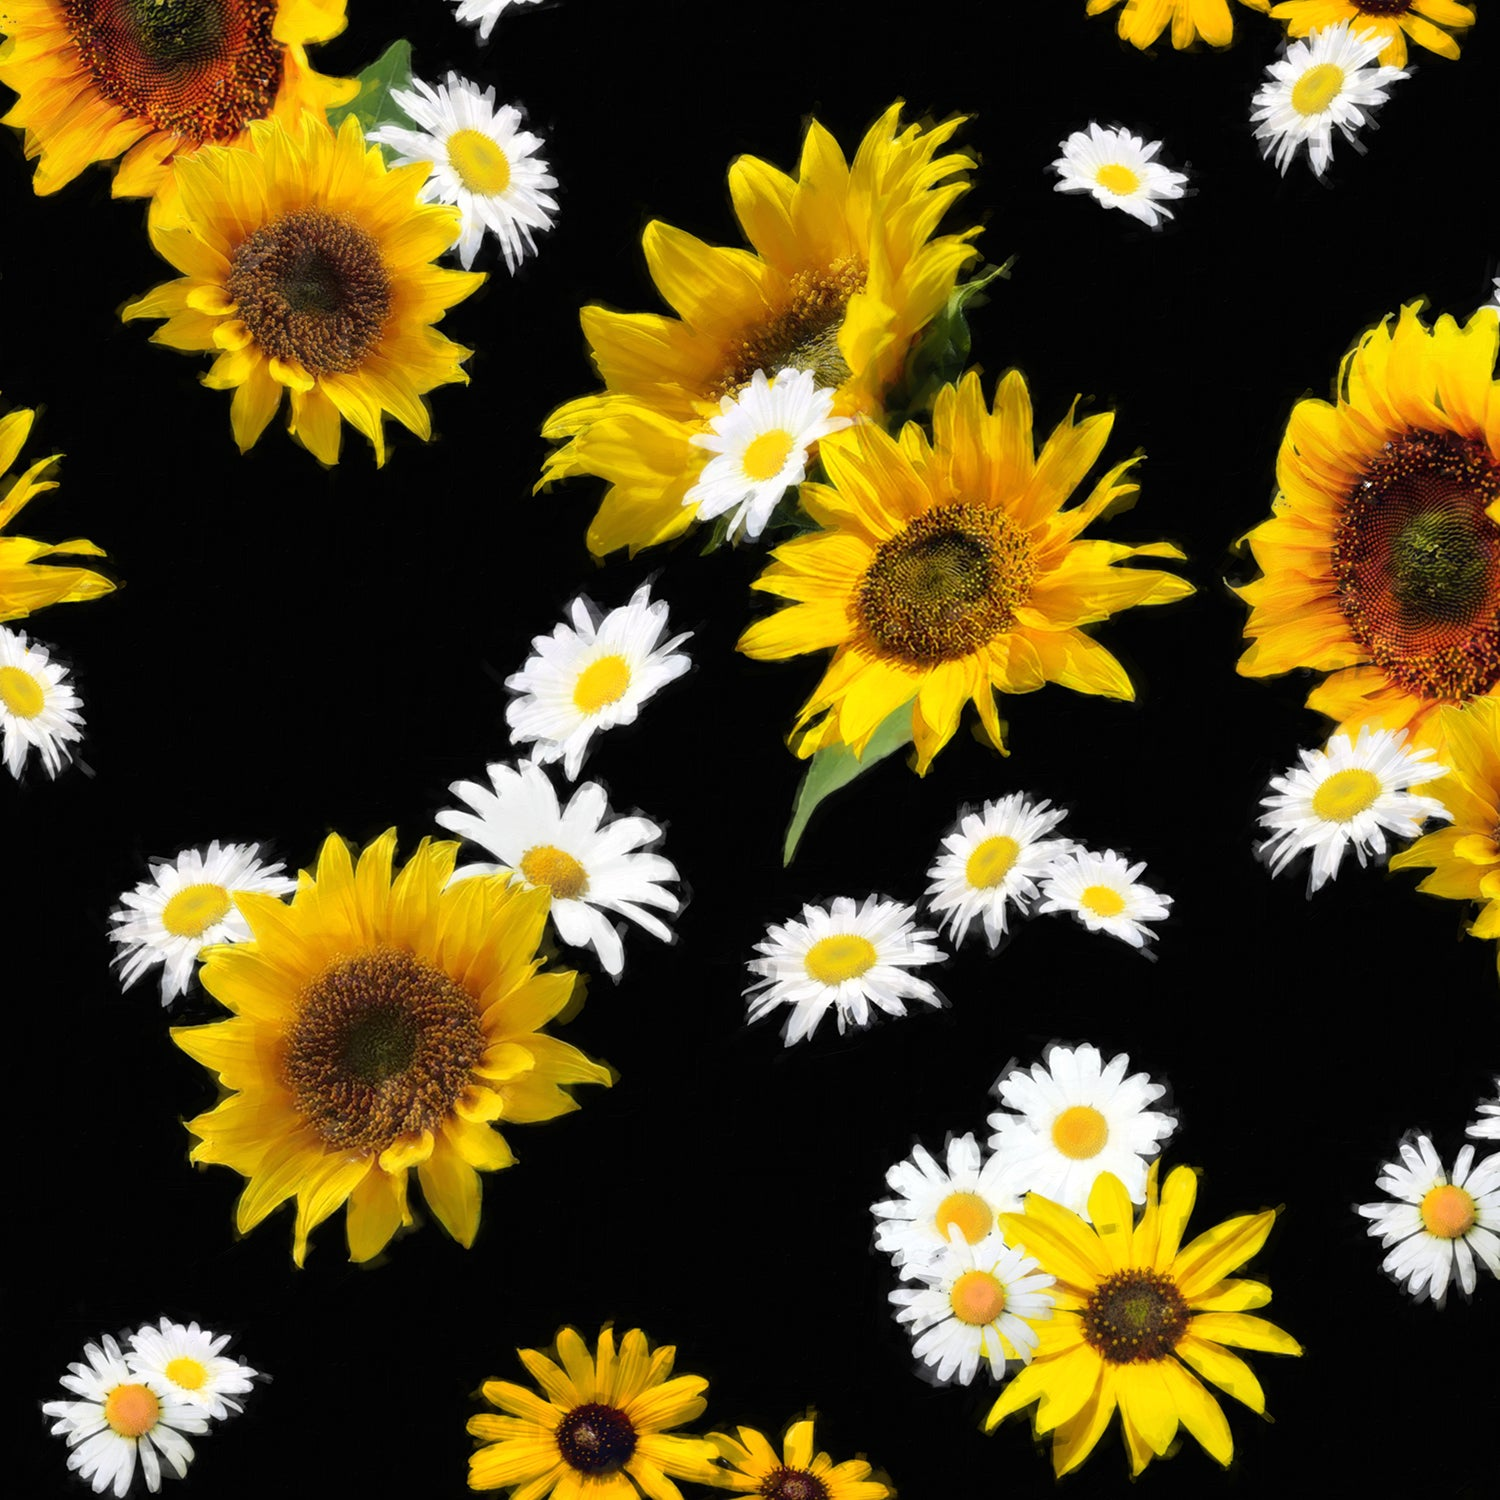 Sunflowers and Daisies Flare Dress Flare Dress  Roxie Rudolph Roxie Rudolph Roxie Rudolph